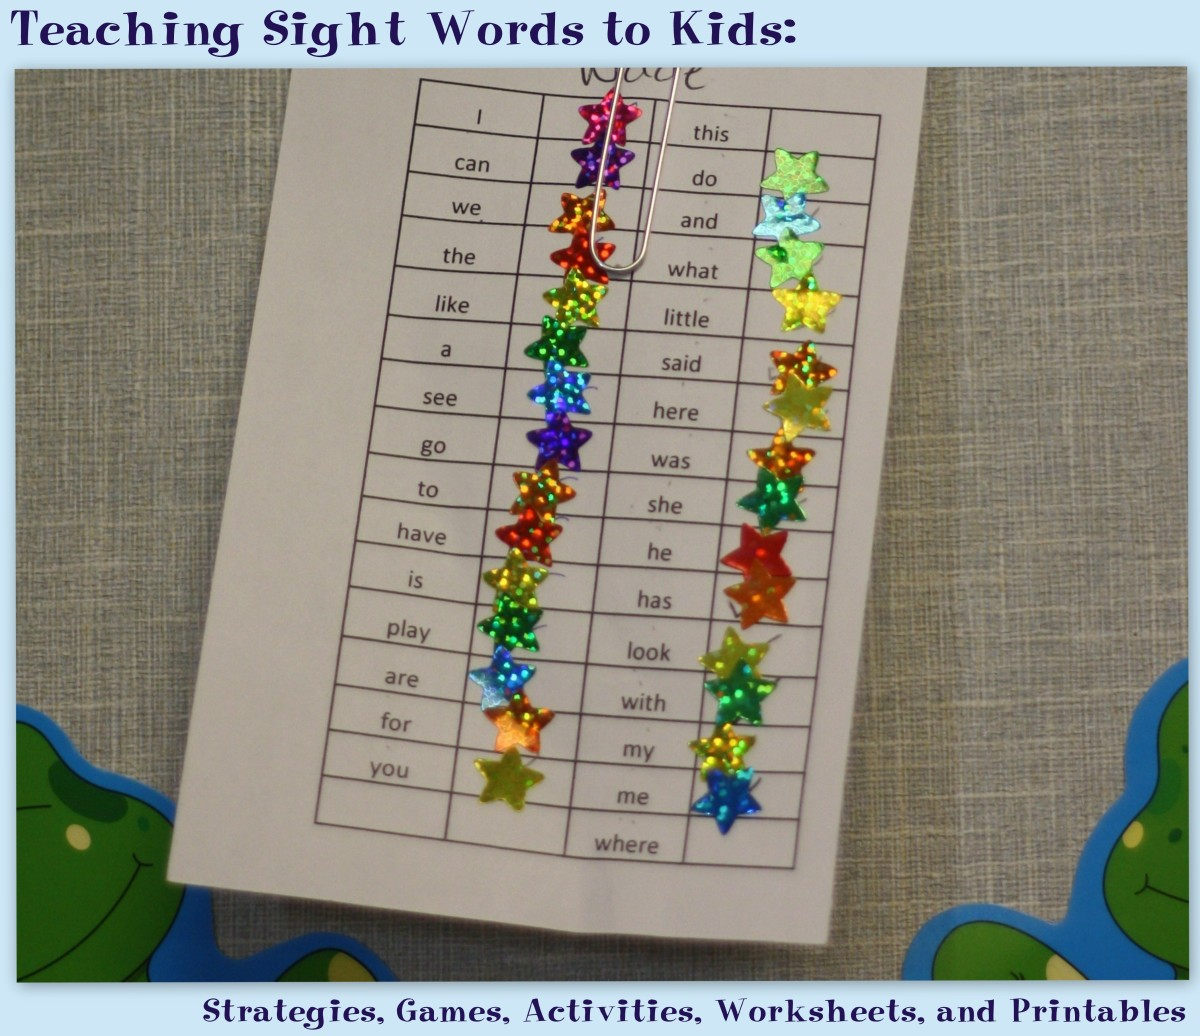 Teaching Sight Words to Kids: Strategies, Games, Activities, Worksheets, and Printables